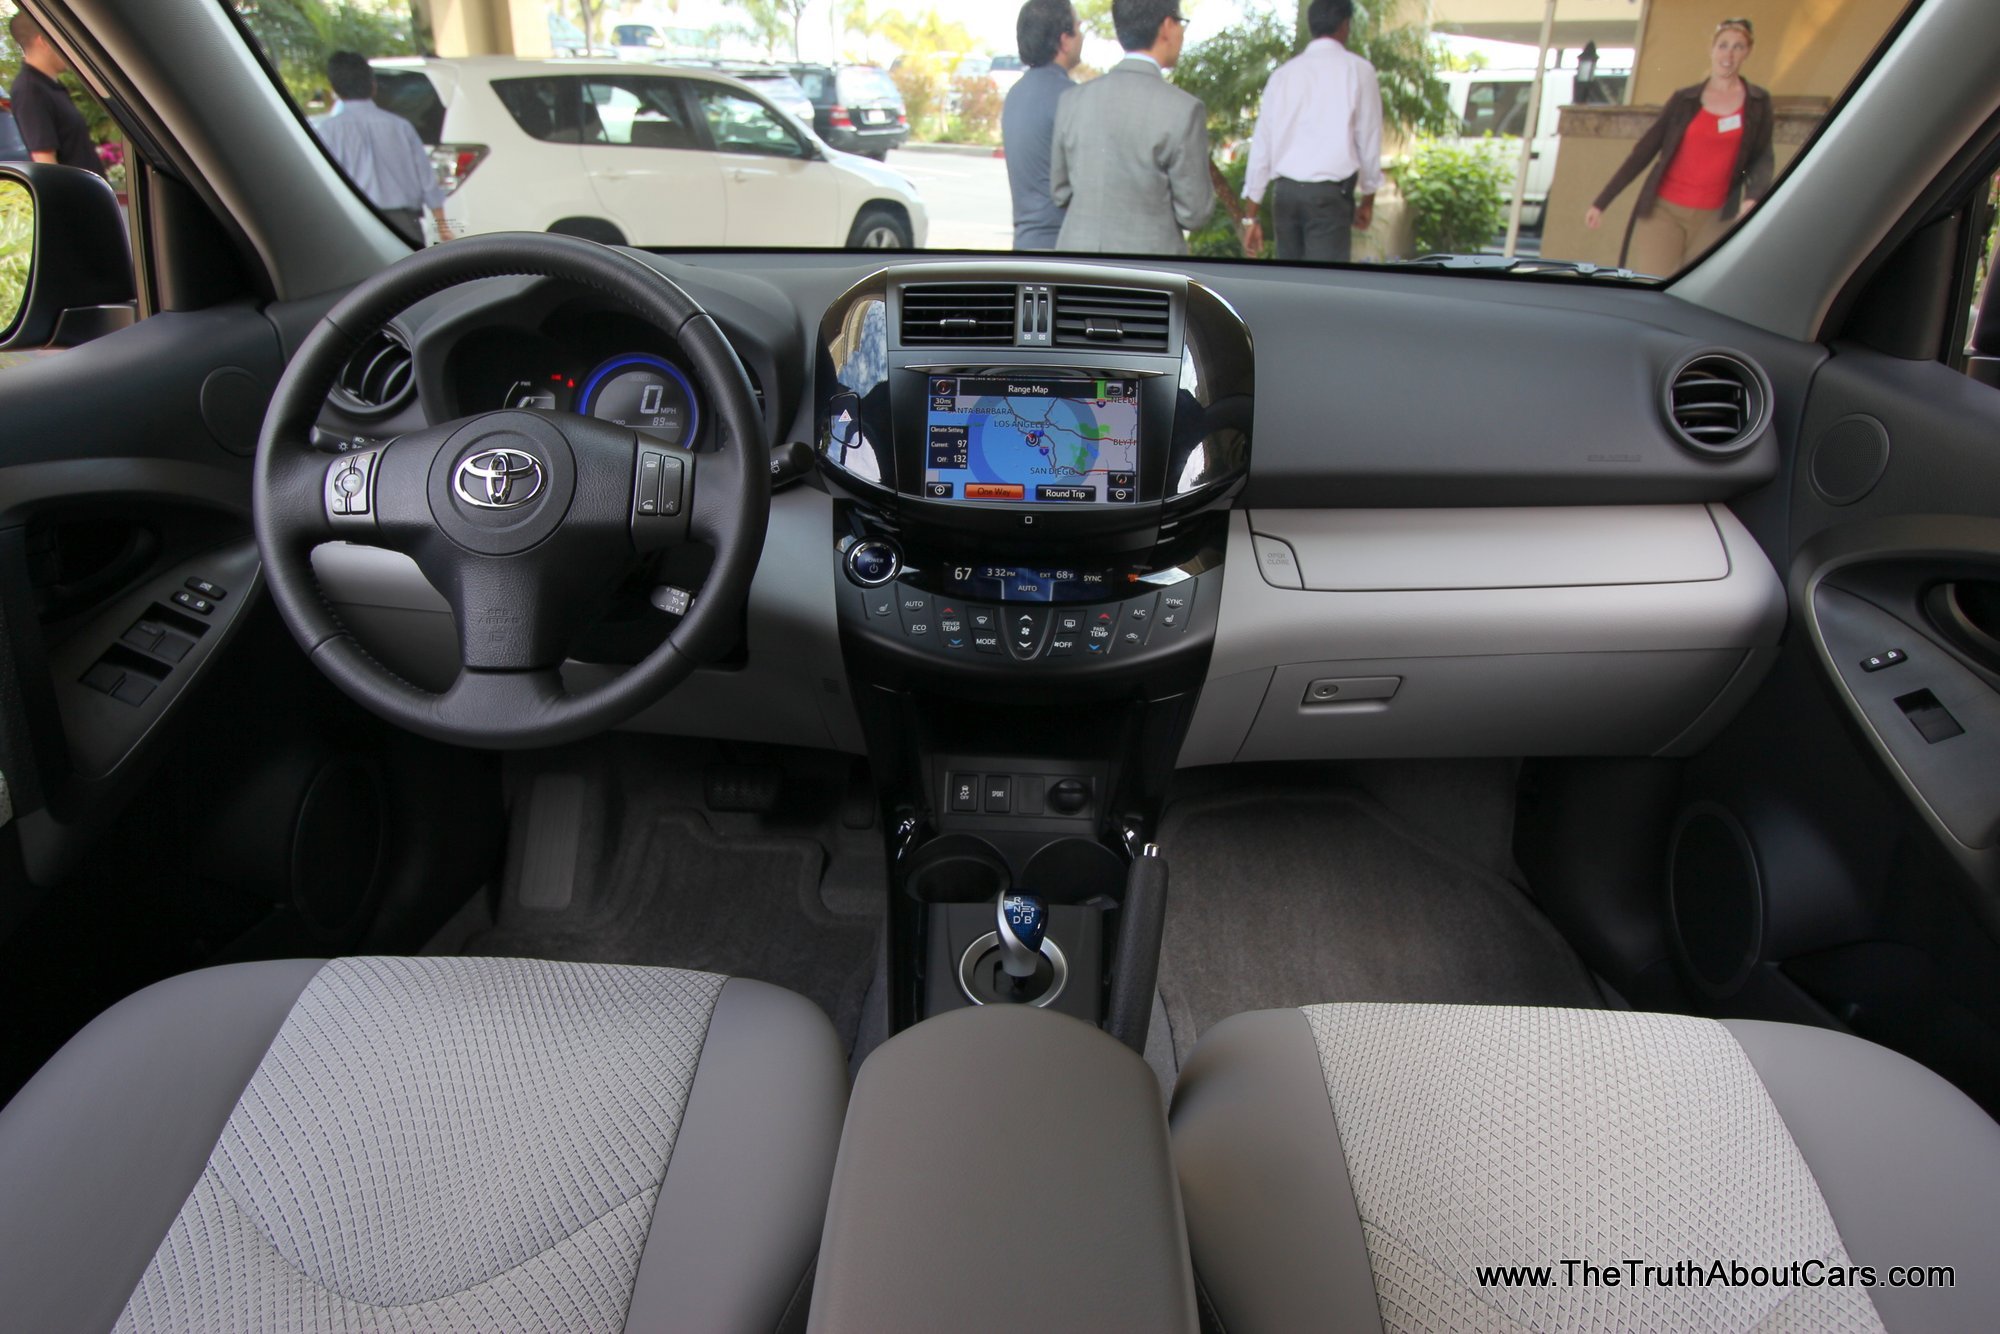 2013 Toyota RAV4 EV, Interior, Dash, Photography Courtesy Of Alex L. Dykes